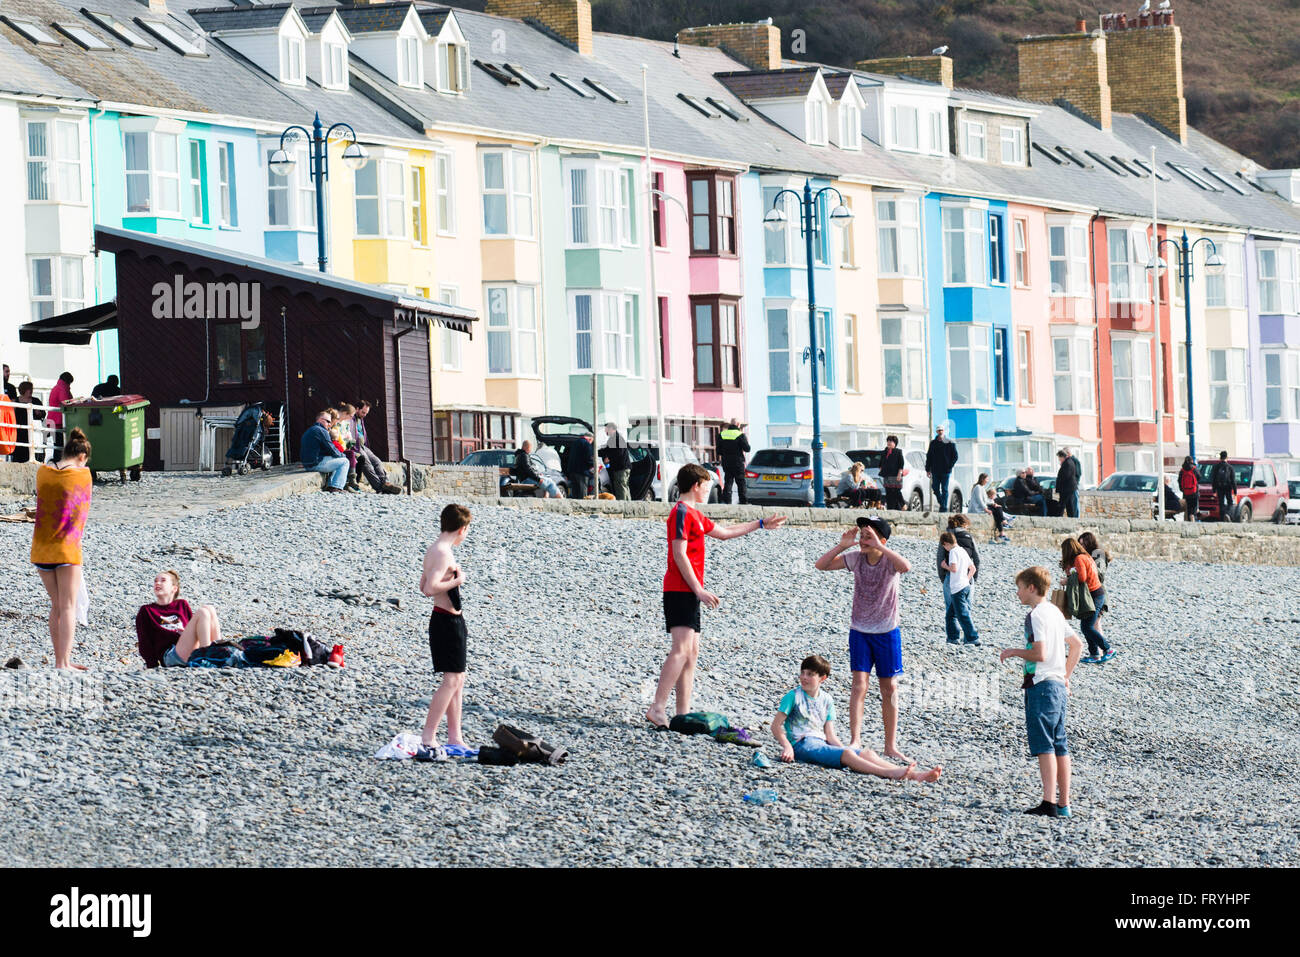 Aberystwyth, Wales, UK. 25th March, 2016. UK weather: People ...